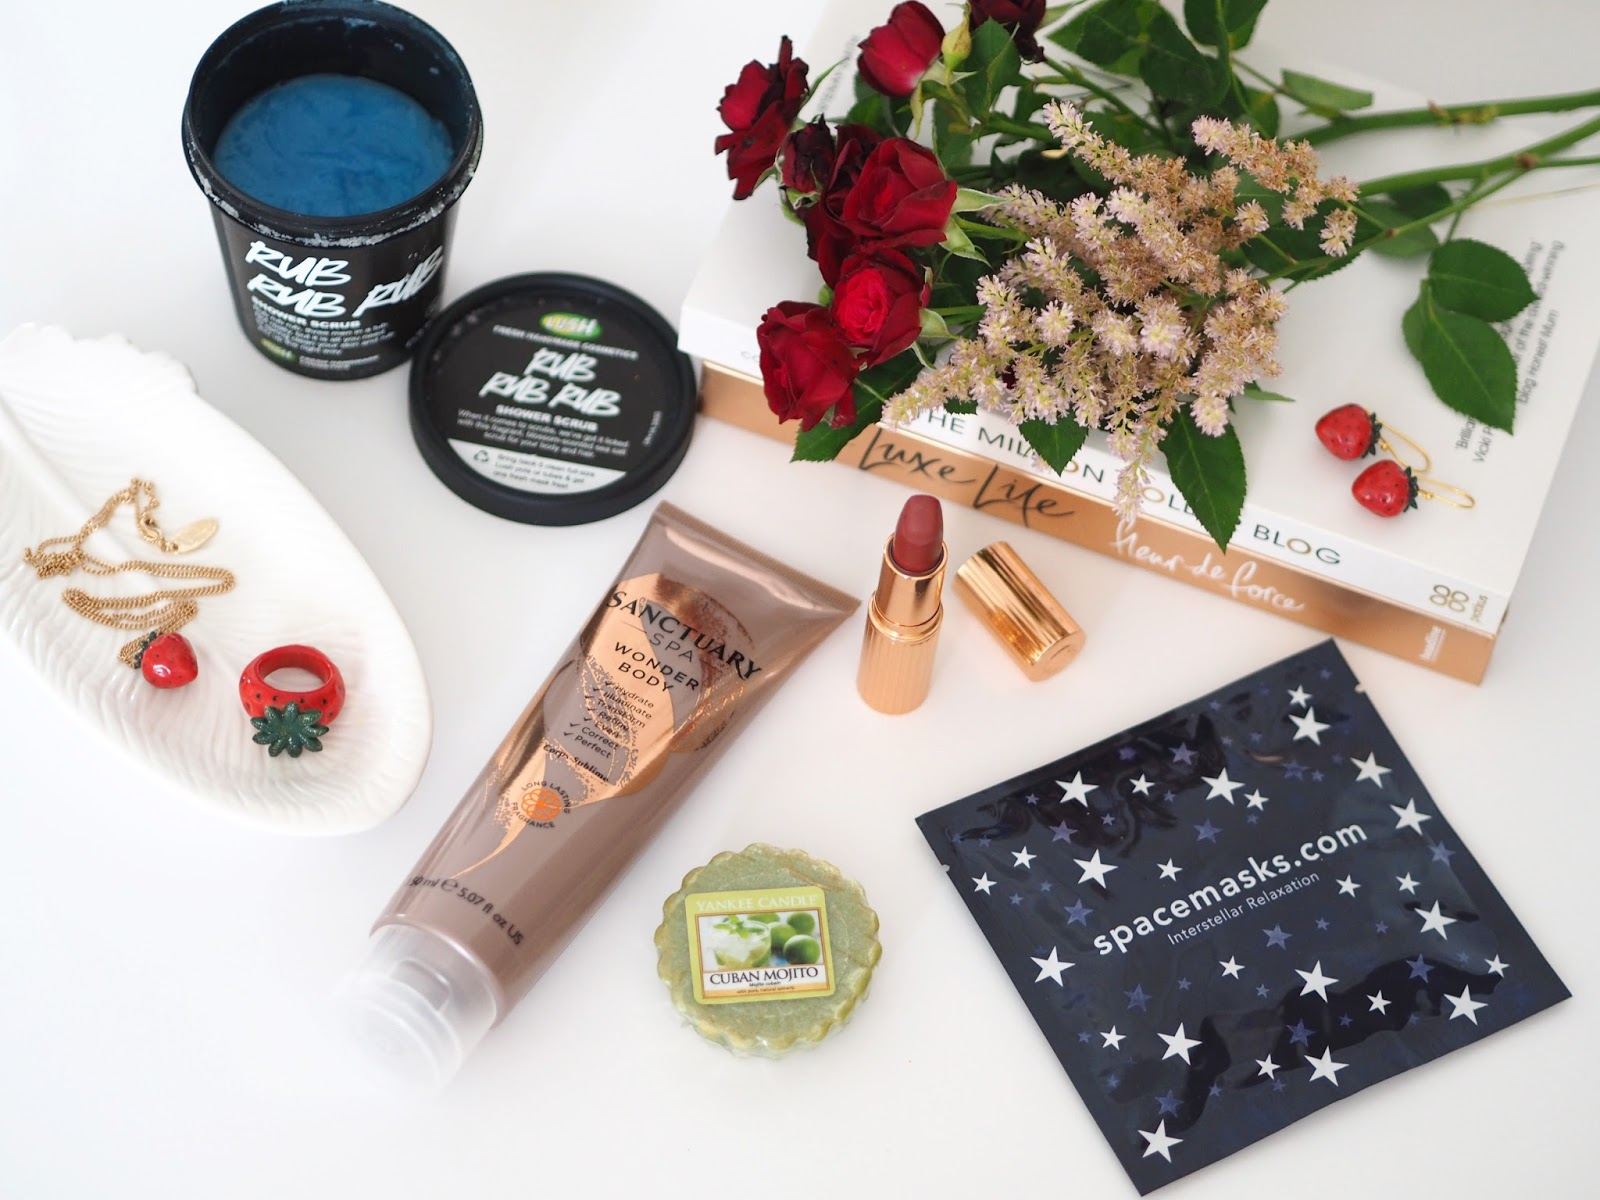 Loves List July, Katie Kirk Loves, UK Blogger, Beauty Blogger, Fashion Blogger, Beauty Favourites, Lush Cosmetics, Charlotte Tilbury, Sanctuary Spa, Spacemasks Eye Masks, Yankee Candle, And Mary Jewellery, Summer Favourites